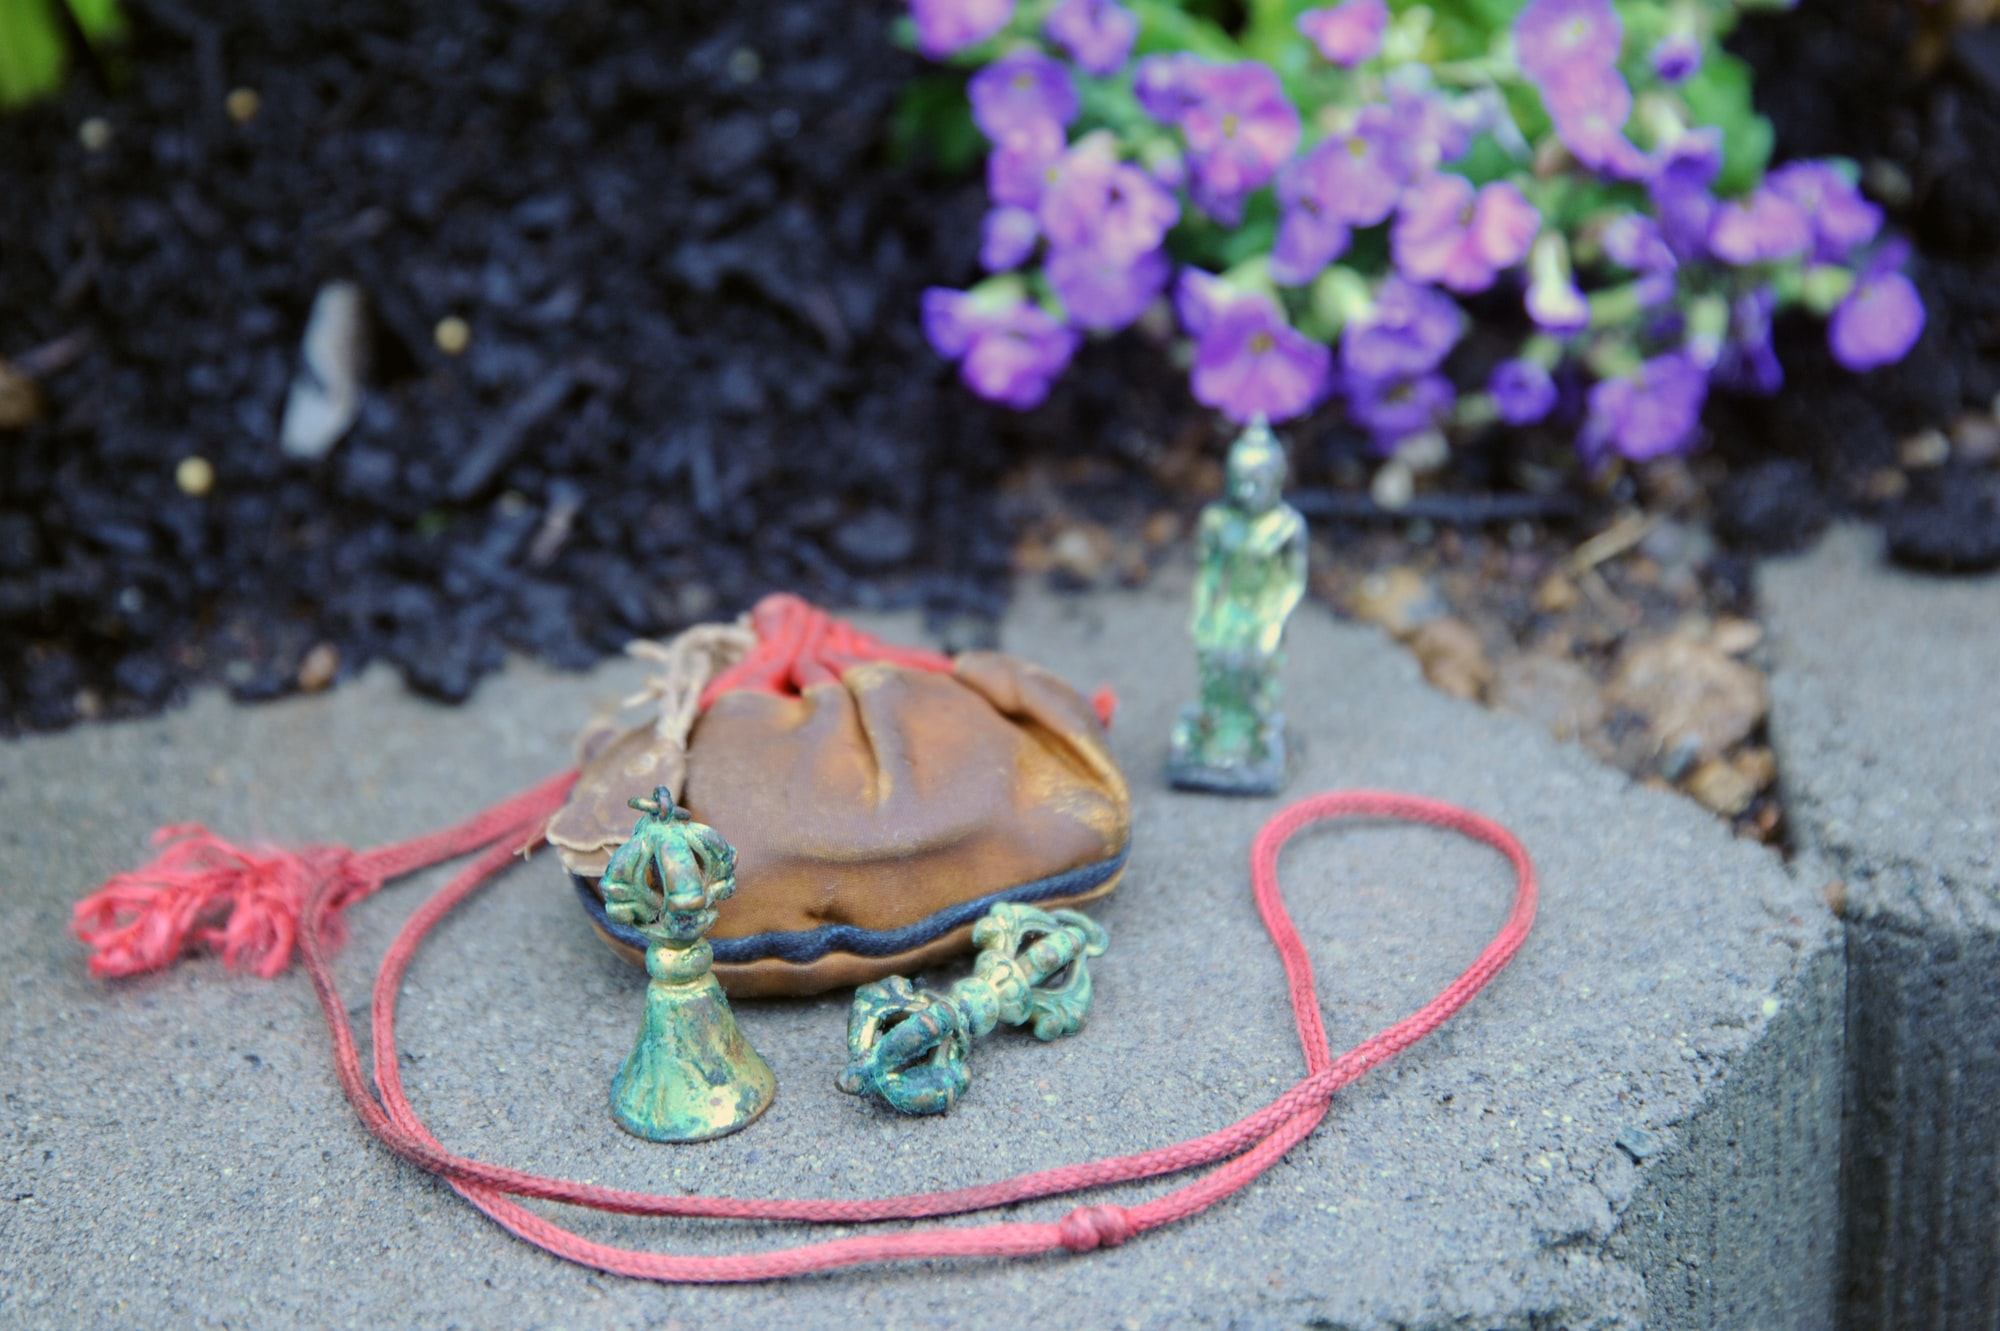 Contents from an old Tibetan Buddhist Trungwas, or protection amulets, dorje, bell, a statue of Maitreya, the Buddha of the future seated, blessing cord, bag, Garden for the Buddha, Seattle, Washington, USA